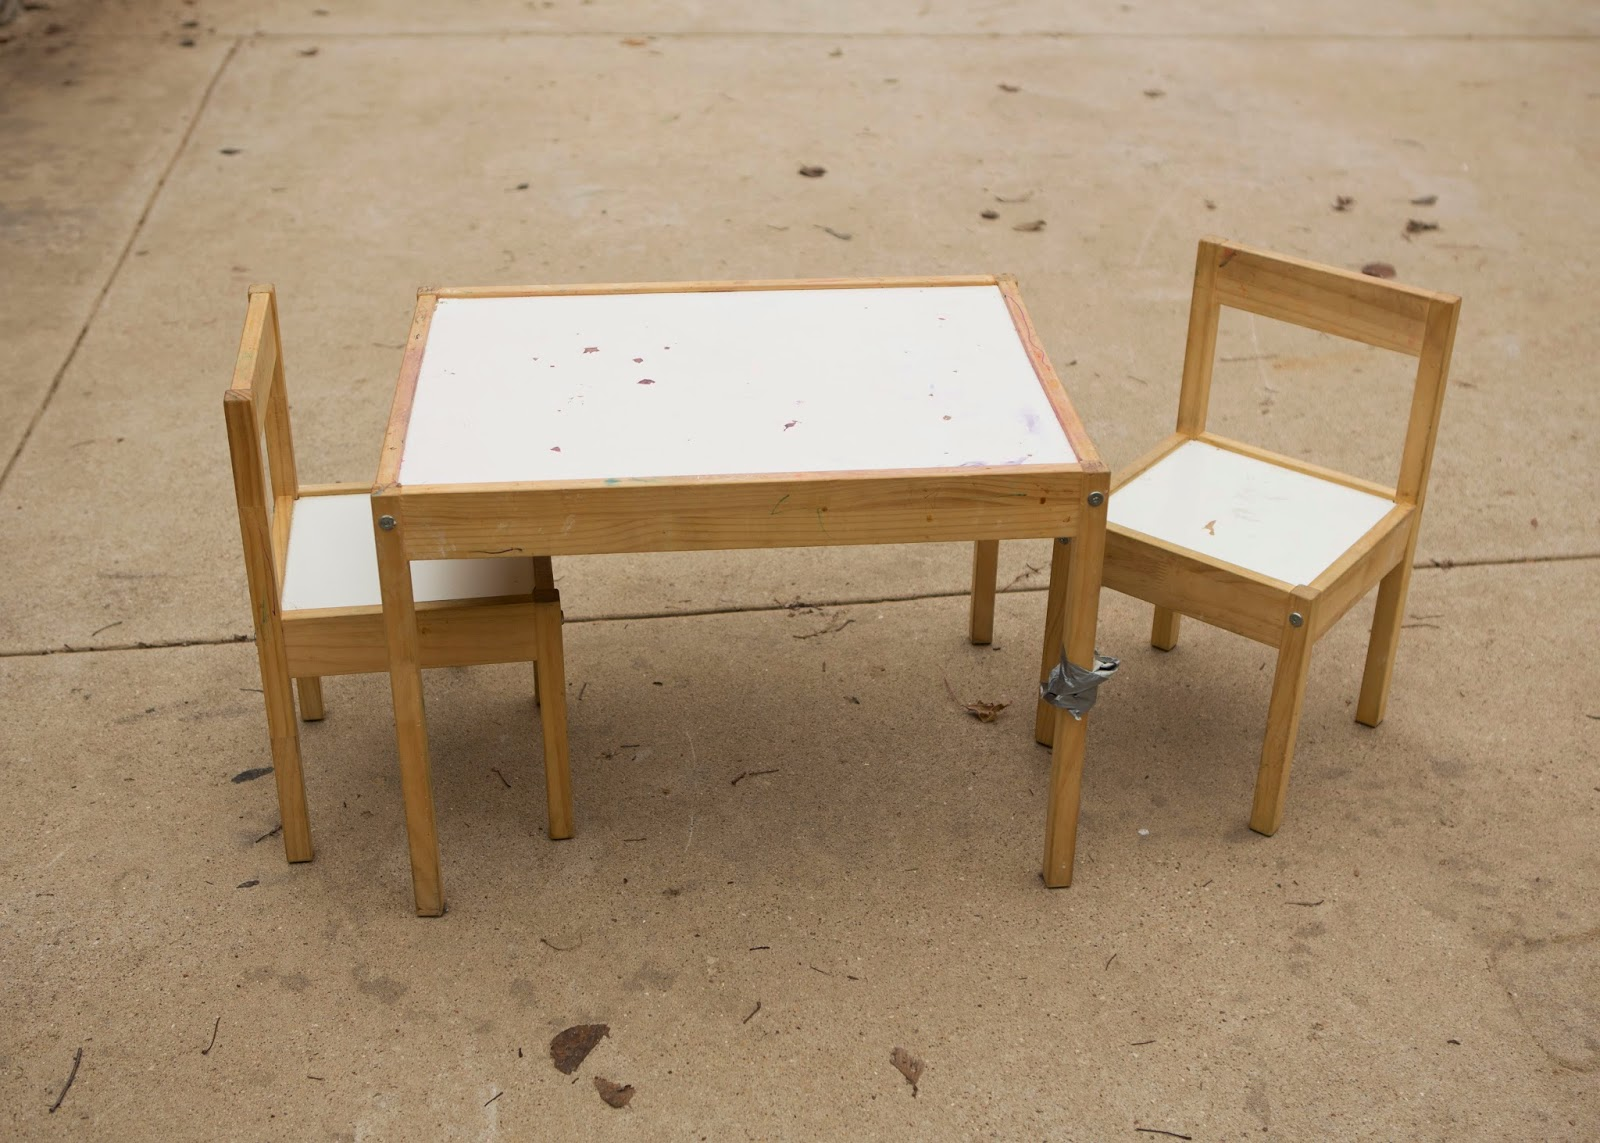 The Particle Board Top Was Bubbling Up And Would Not Get Clean Legs Sides Chairs Had Paint Color Marks Whole Table Seen Better